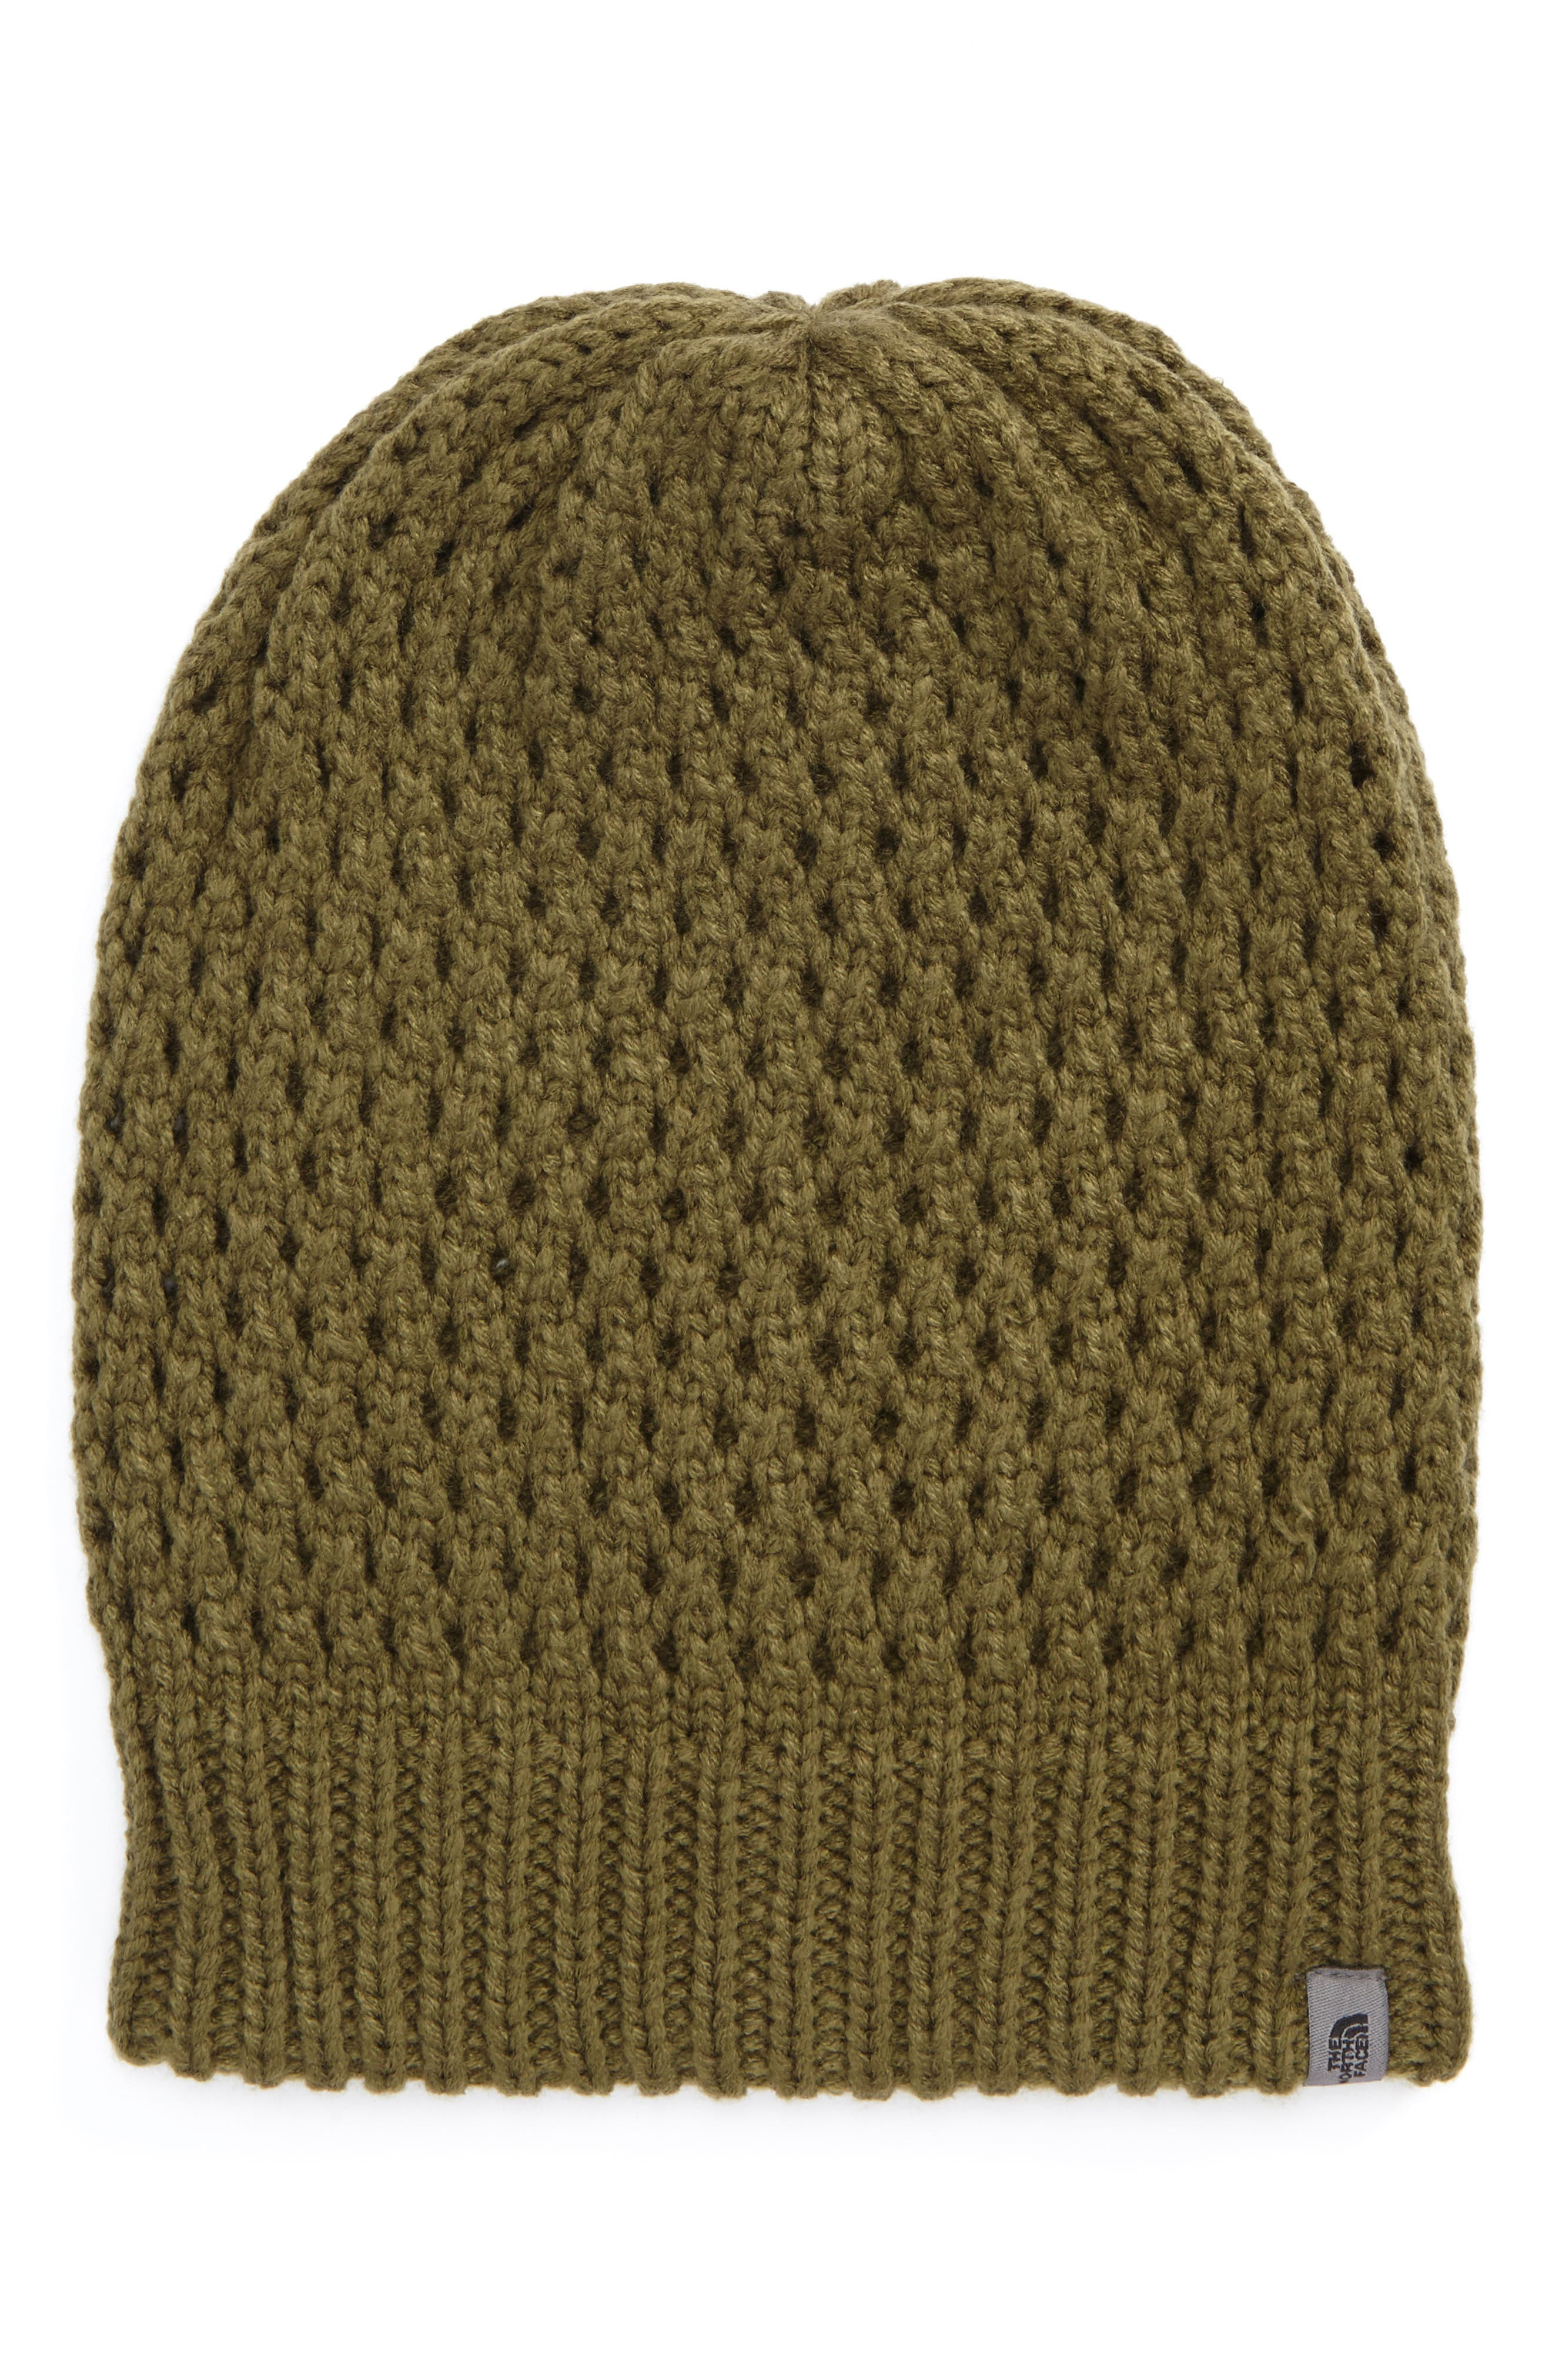 Alternate Image 1 Selected - The North Face 'Shinsky' Reversible Beanie